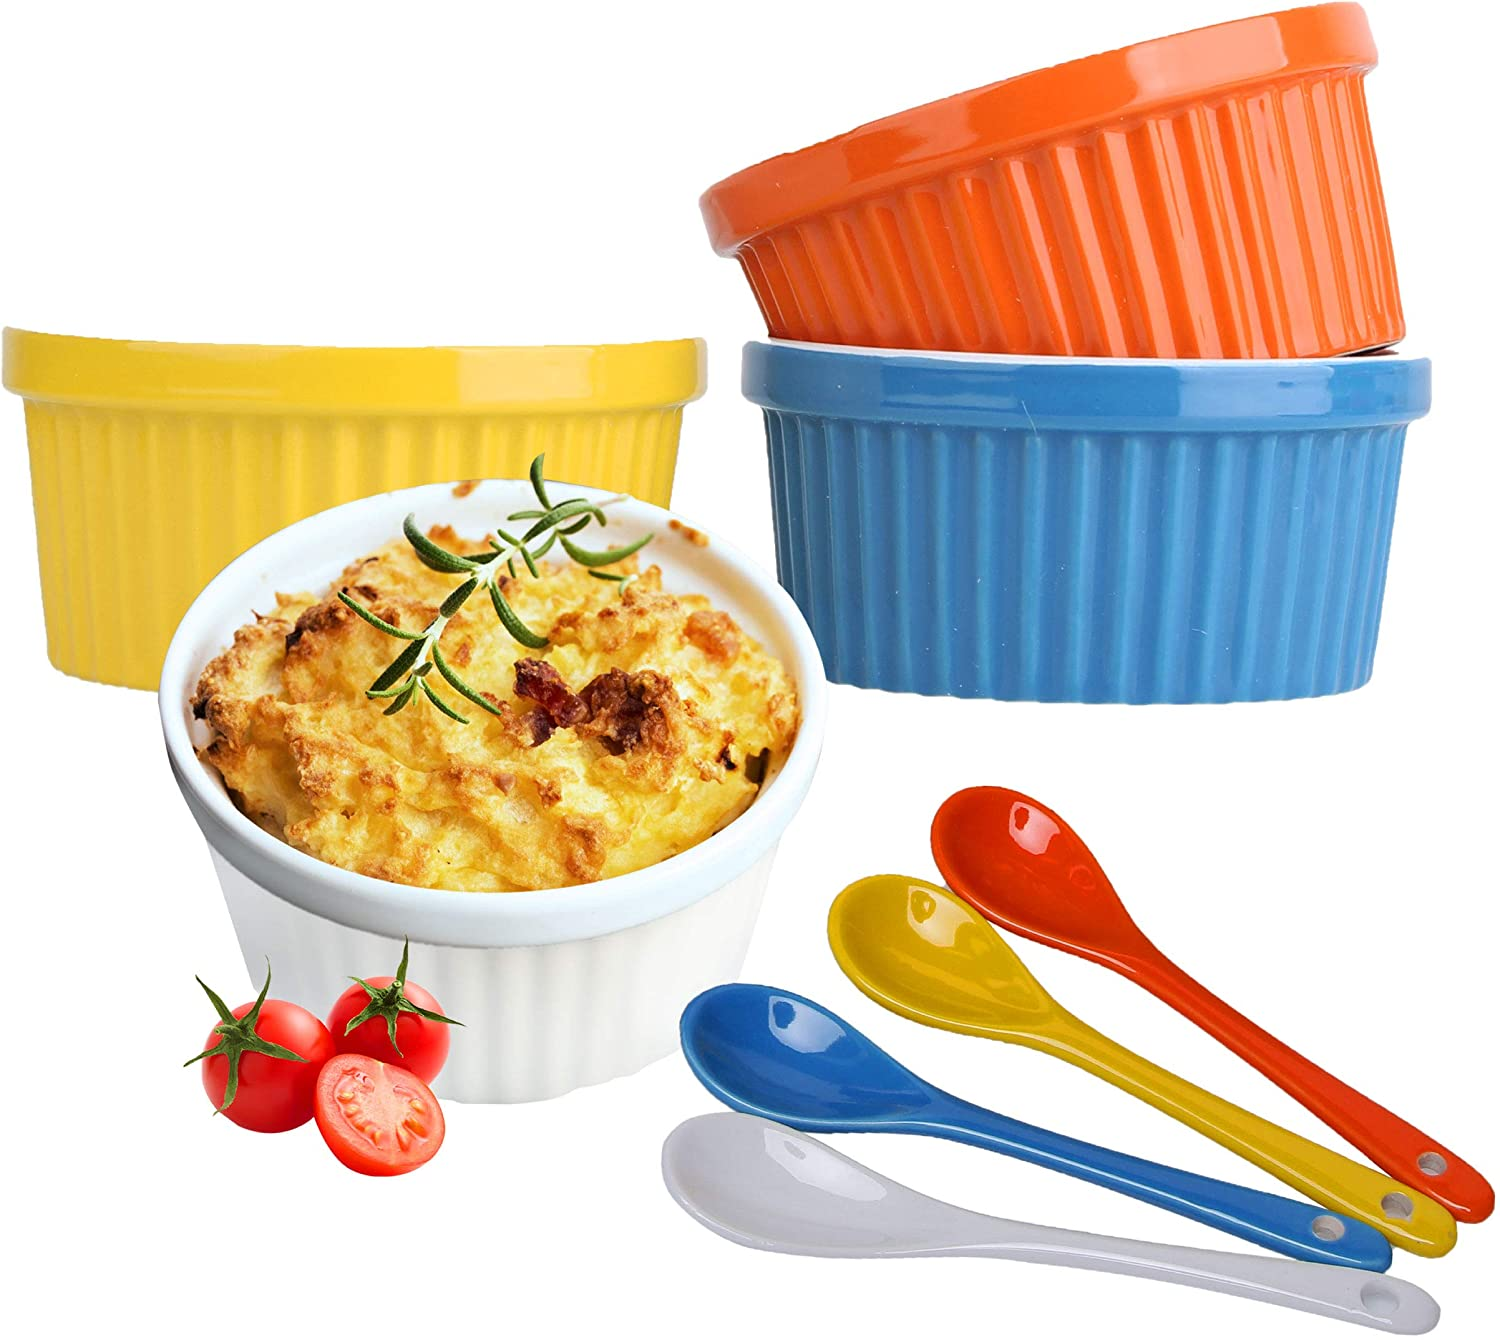 Souffle Dish Ramekins for Baking – 12 Ounce (Set of 4, Assorted Colors with 4 Extra Spoons) 12 Oz Ceramic Oven Safe Round Fluted Bowl for Desserts Soups Snacks Quiche Appetizers Casserole Creme Brulee